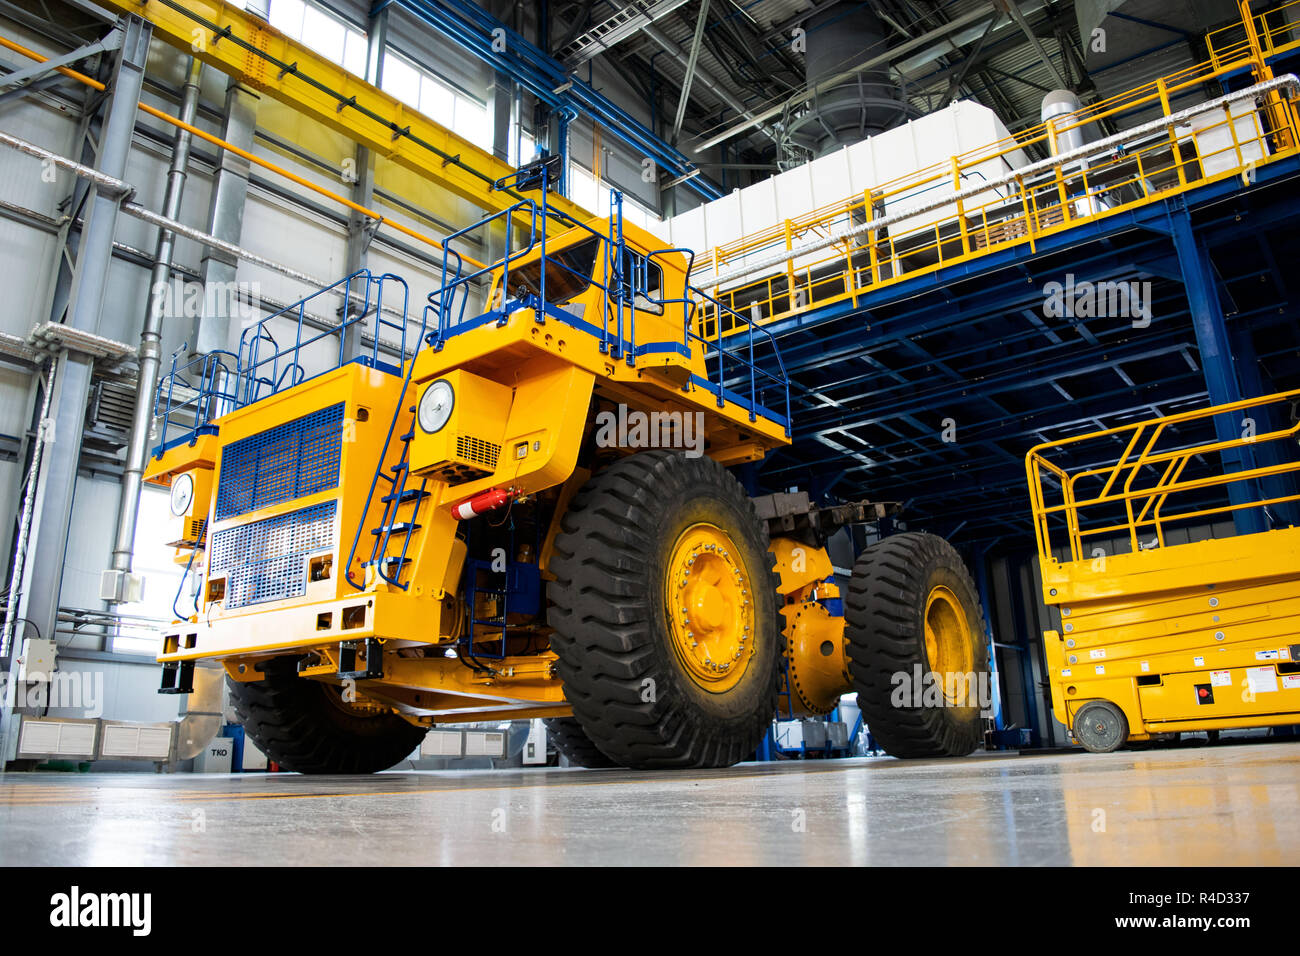 Car And Truck Shop >> Big Mining Truck In The Production Shop Of The Car Factory